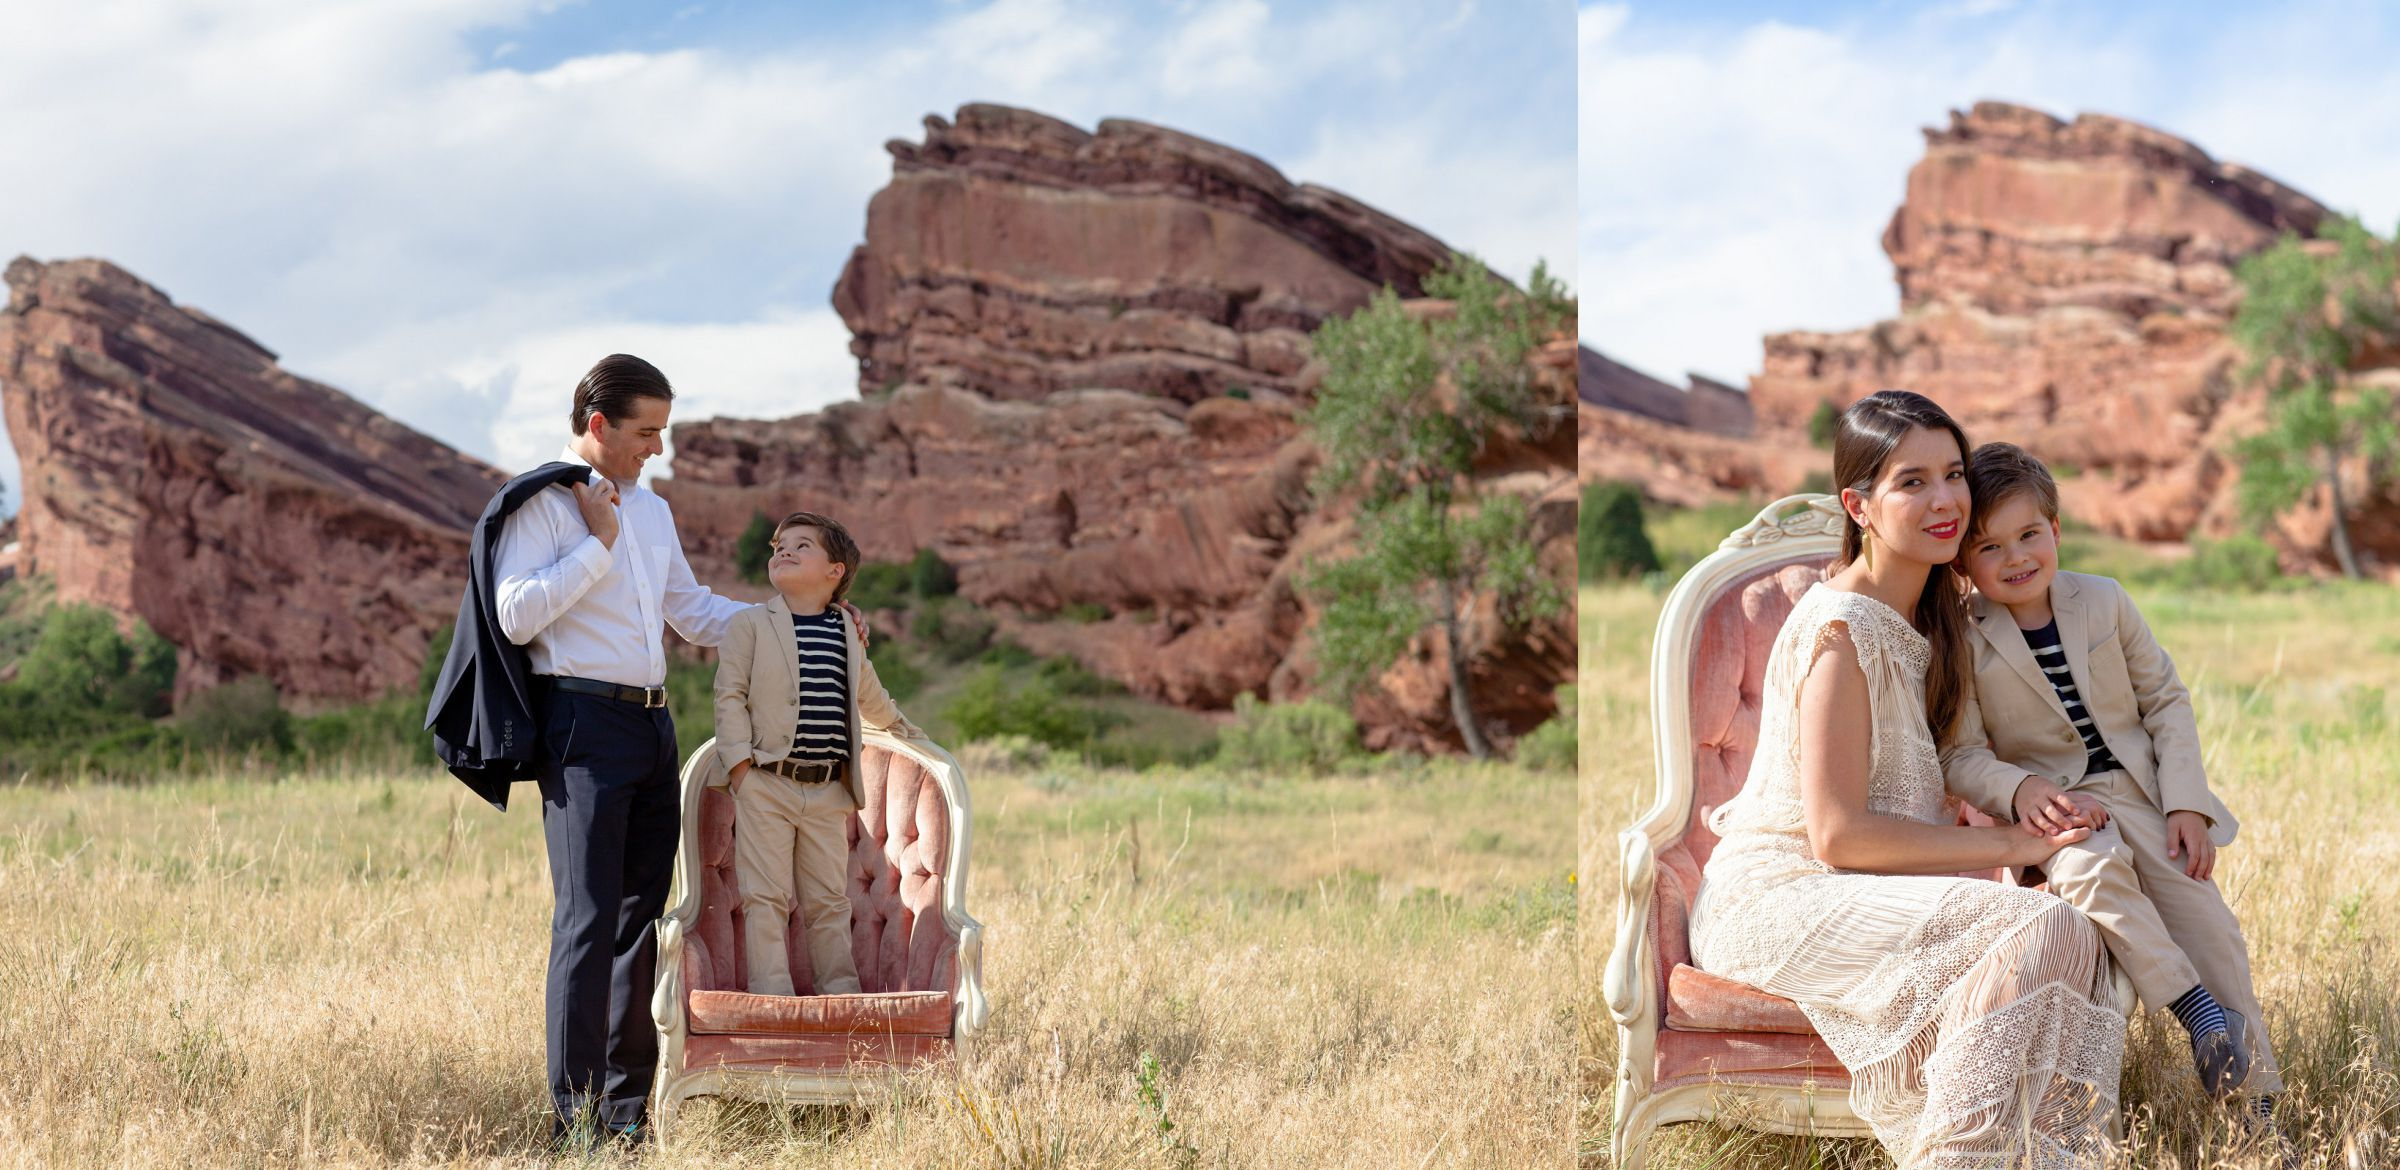 05-Denver Family Photography.jpg